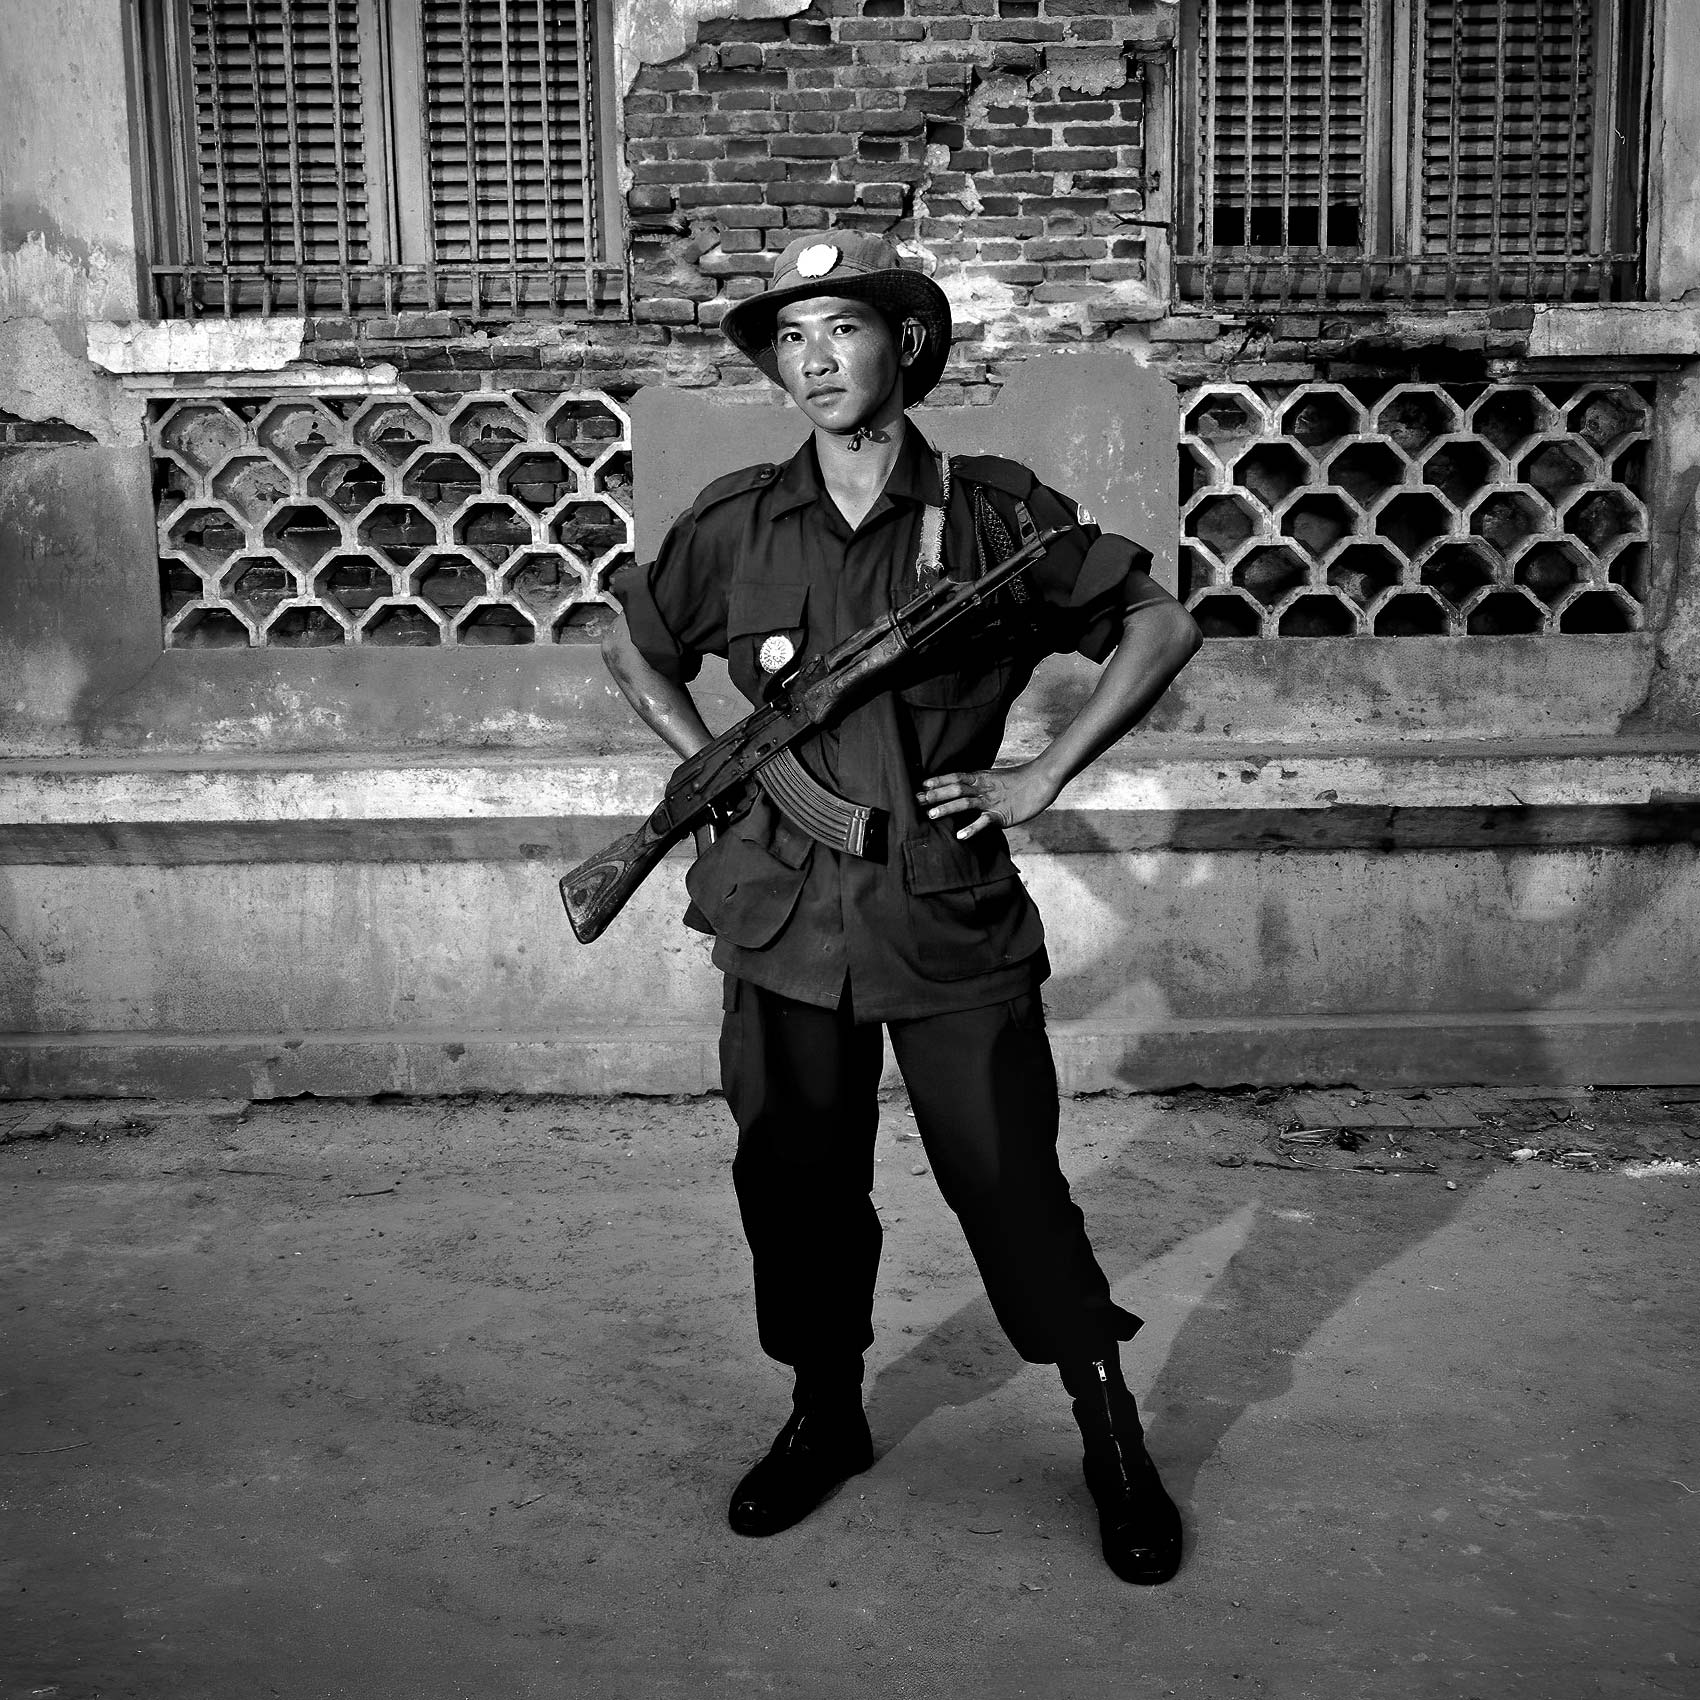 a-cambodian-solider-poses-for-a-photo-with-an-ak-47-in-phnom-penh